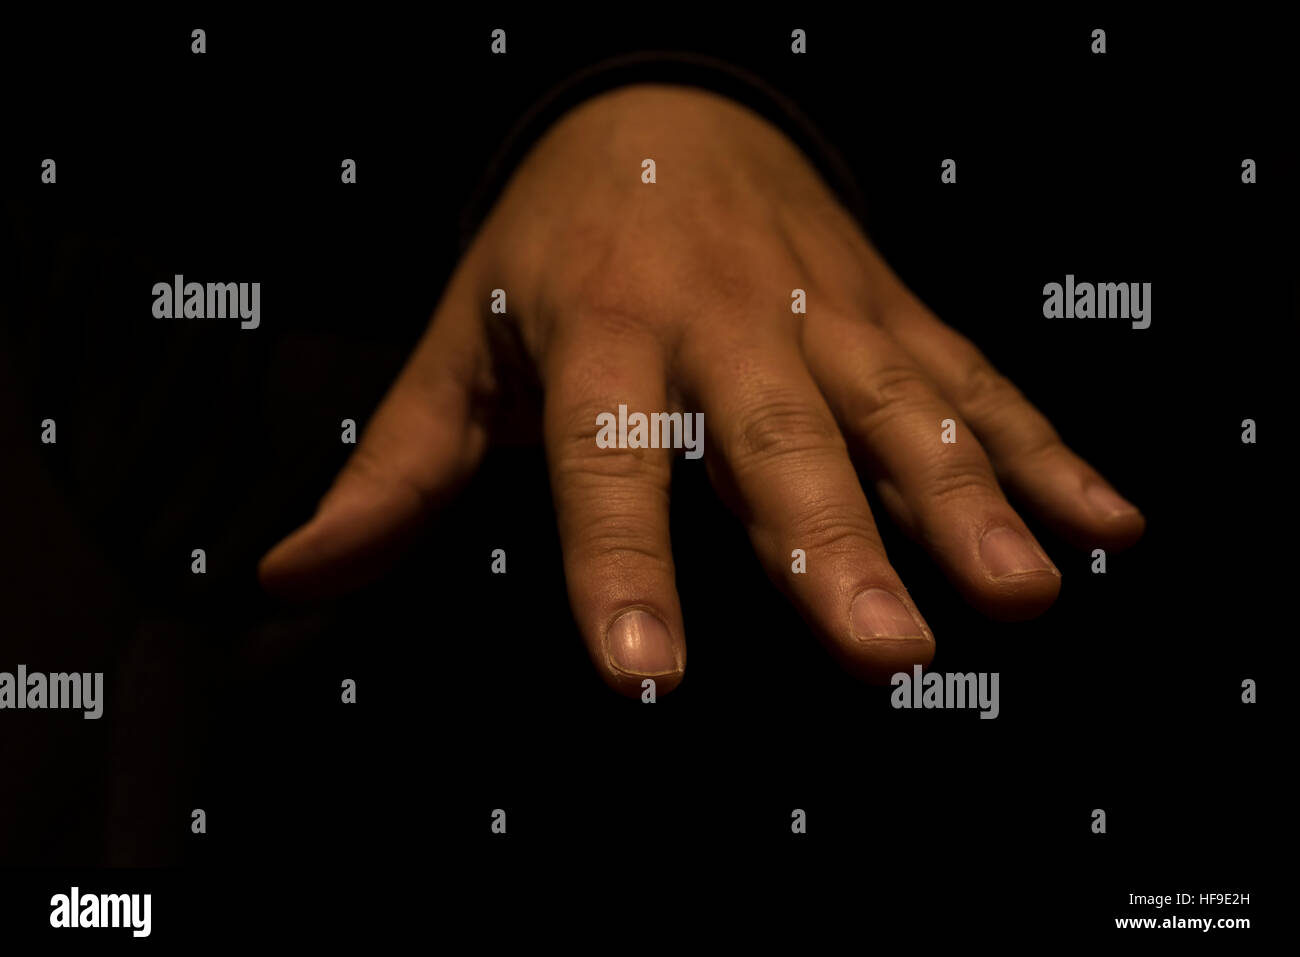 Isolated hand man in the darkness that is becoming diffuse Stock Photo